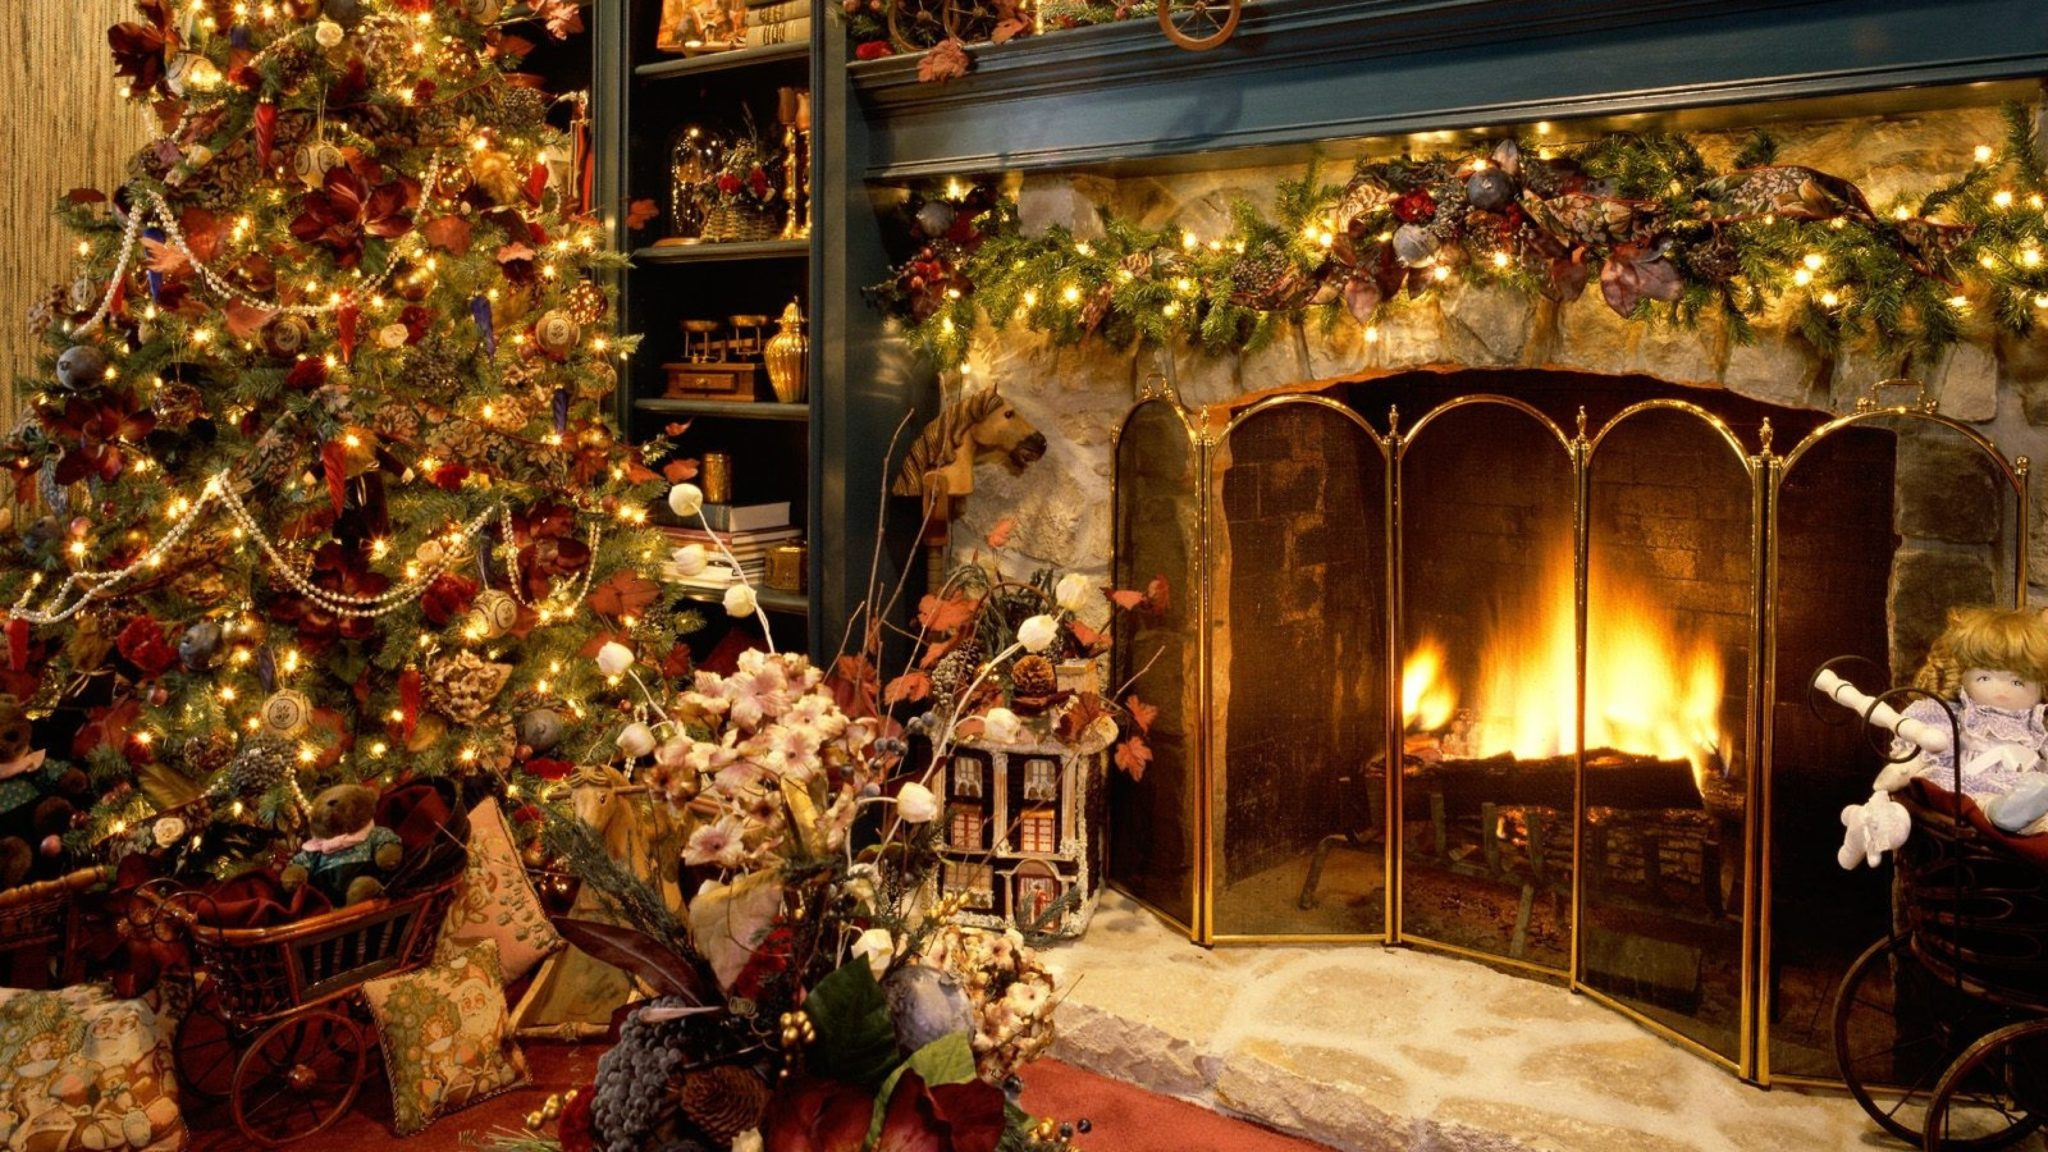 Christmas Fireplace Wallpaper Christmas Fireplace Wallpaper 2 Michael Walsh Quality Books